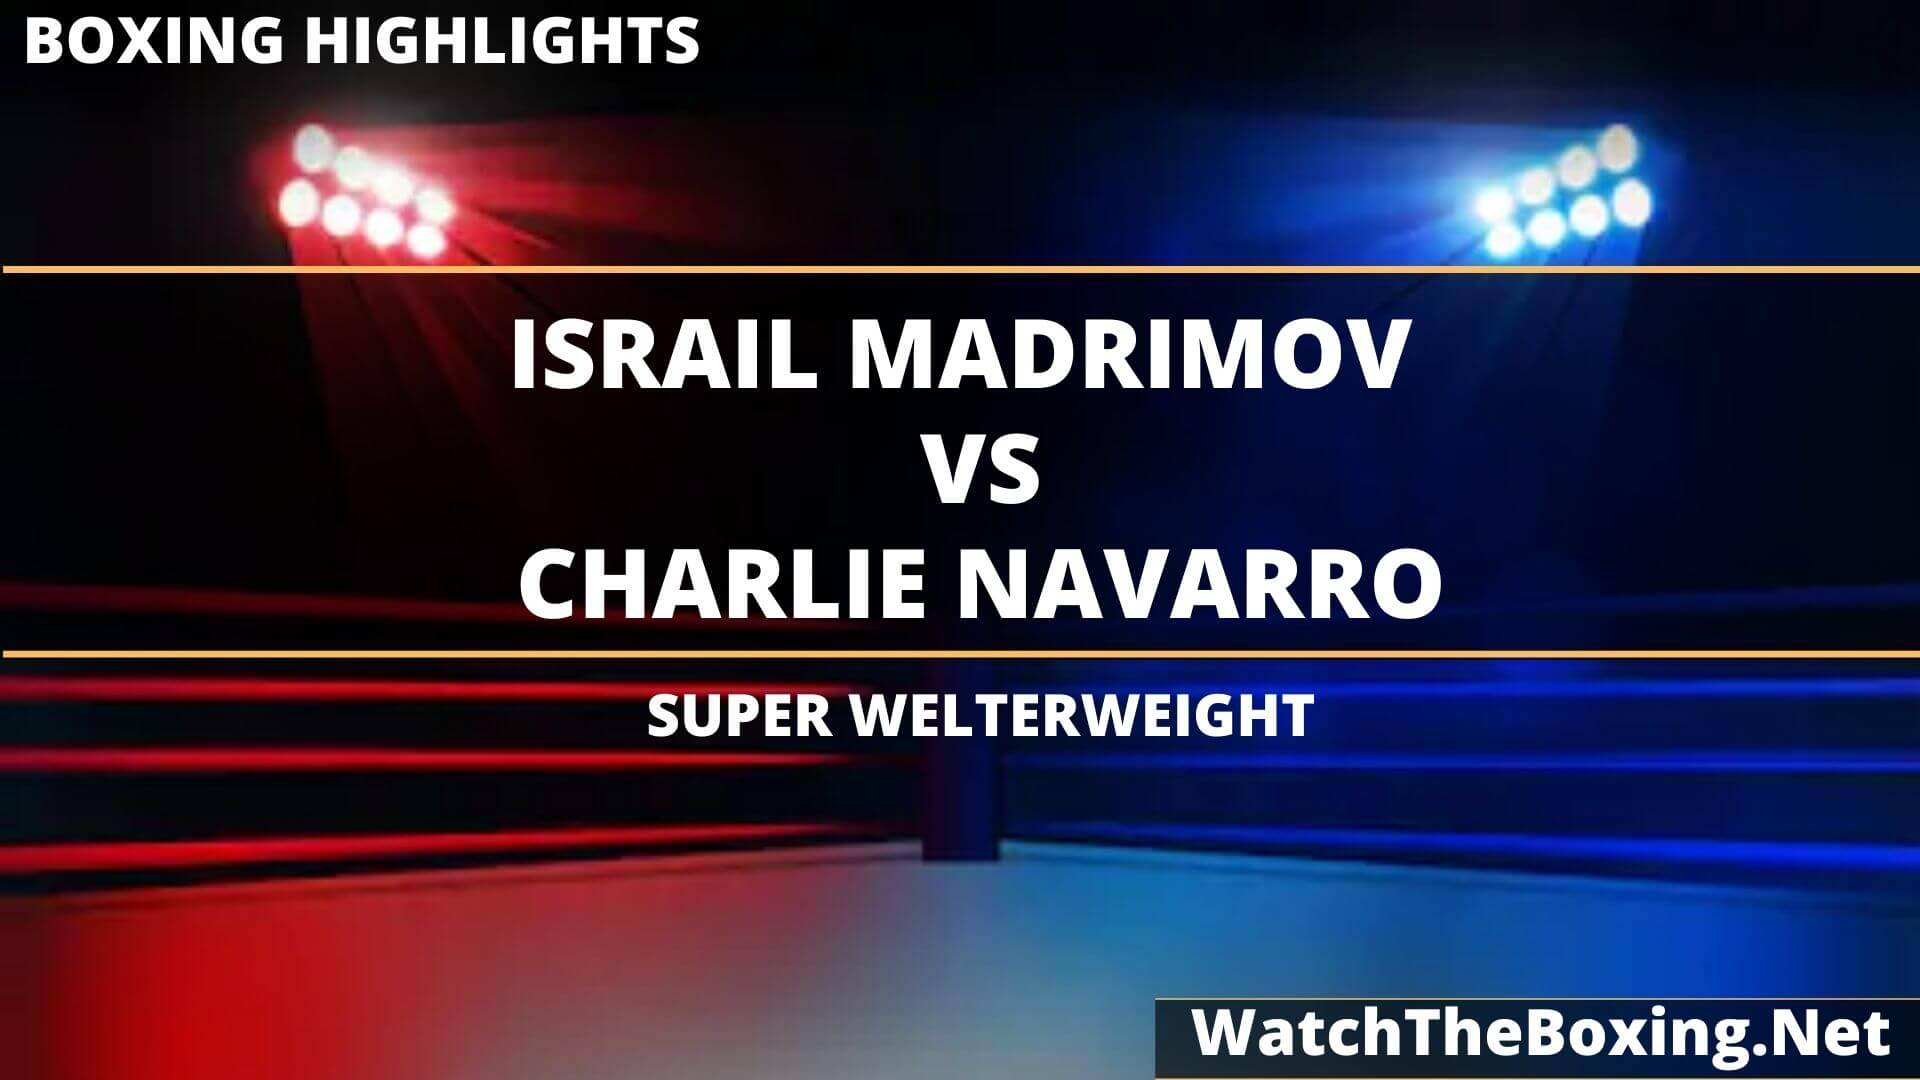 Israil Madrimov Vs Charlie Navarro Highlights 2020